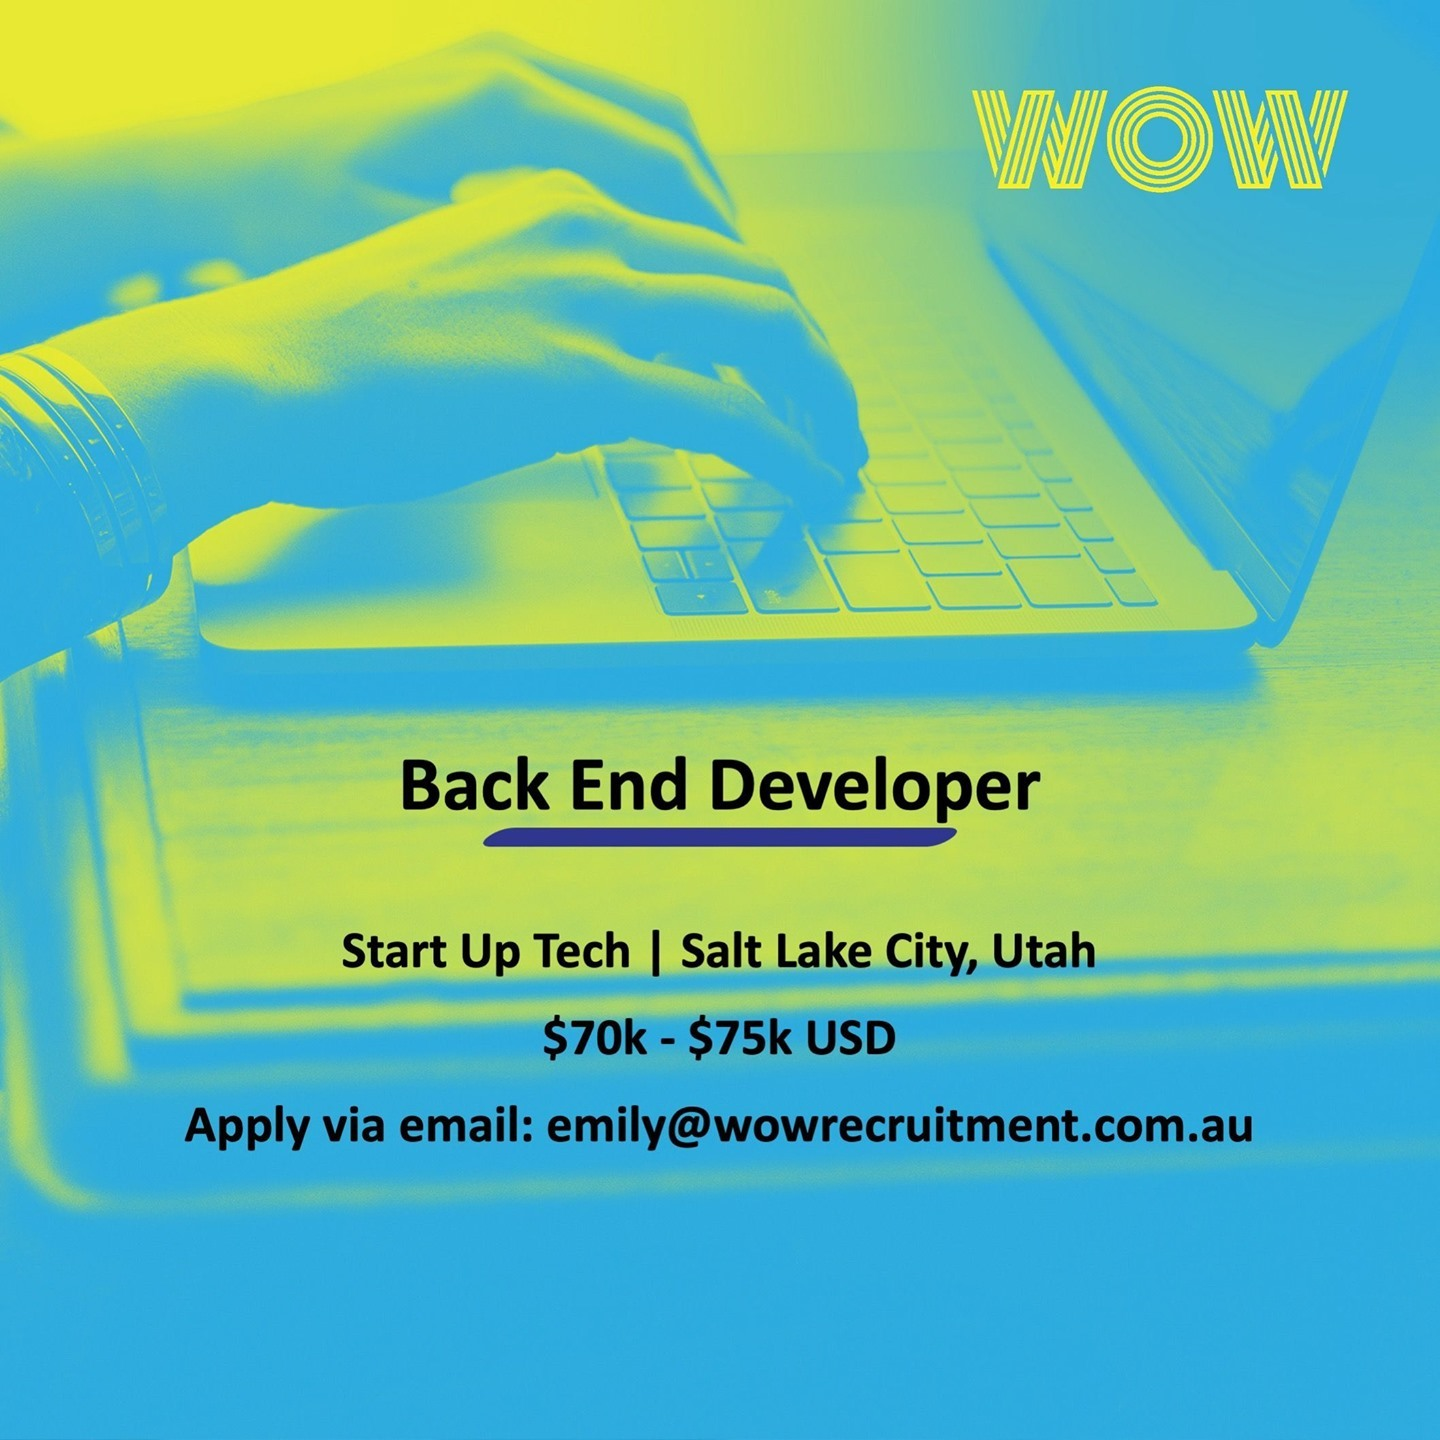 WOW is looking for a Back End Software Developer to join a rapidly growing tech start-up in Salt Lake City! Reach out to Emily McLeod via email for more info! 🖥️ #DoWhatYouLove #WorkHappy